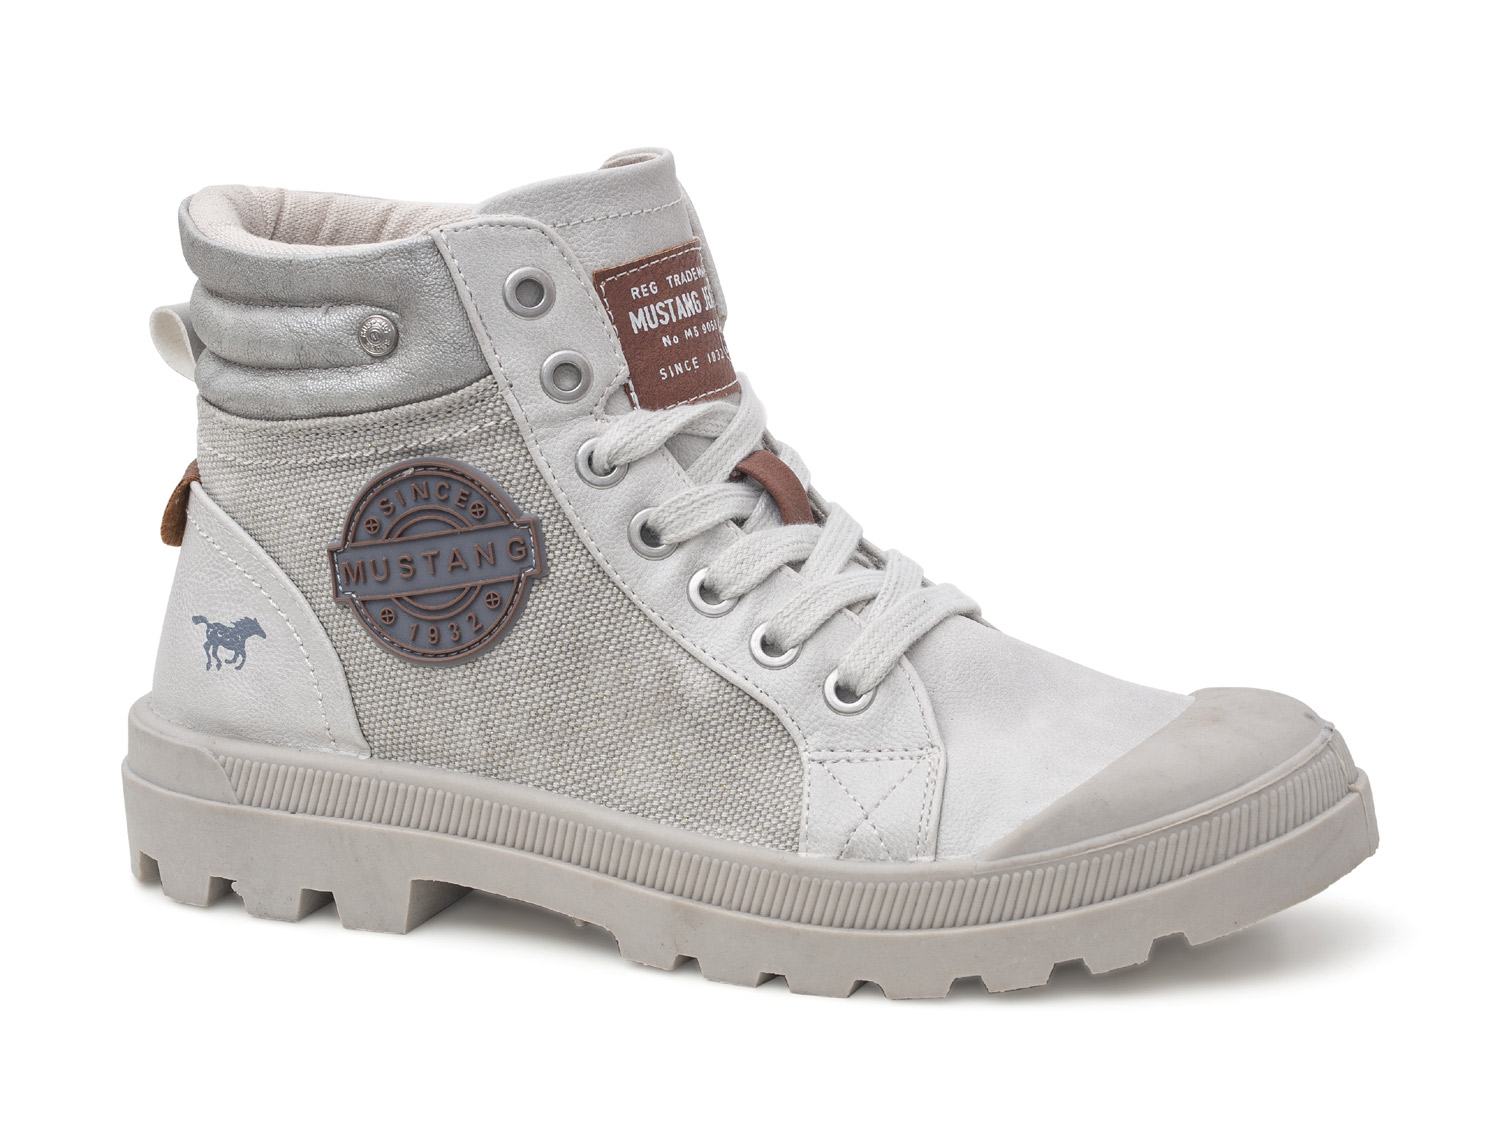 Mustang chaussures femme 44C 027